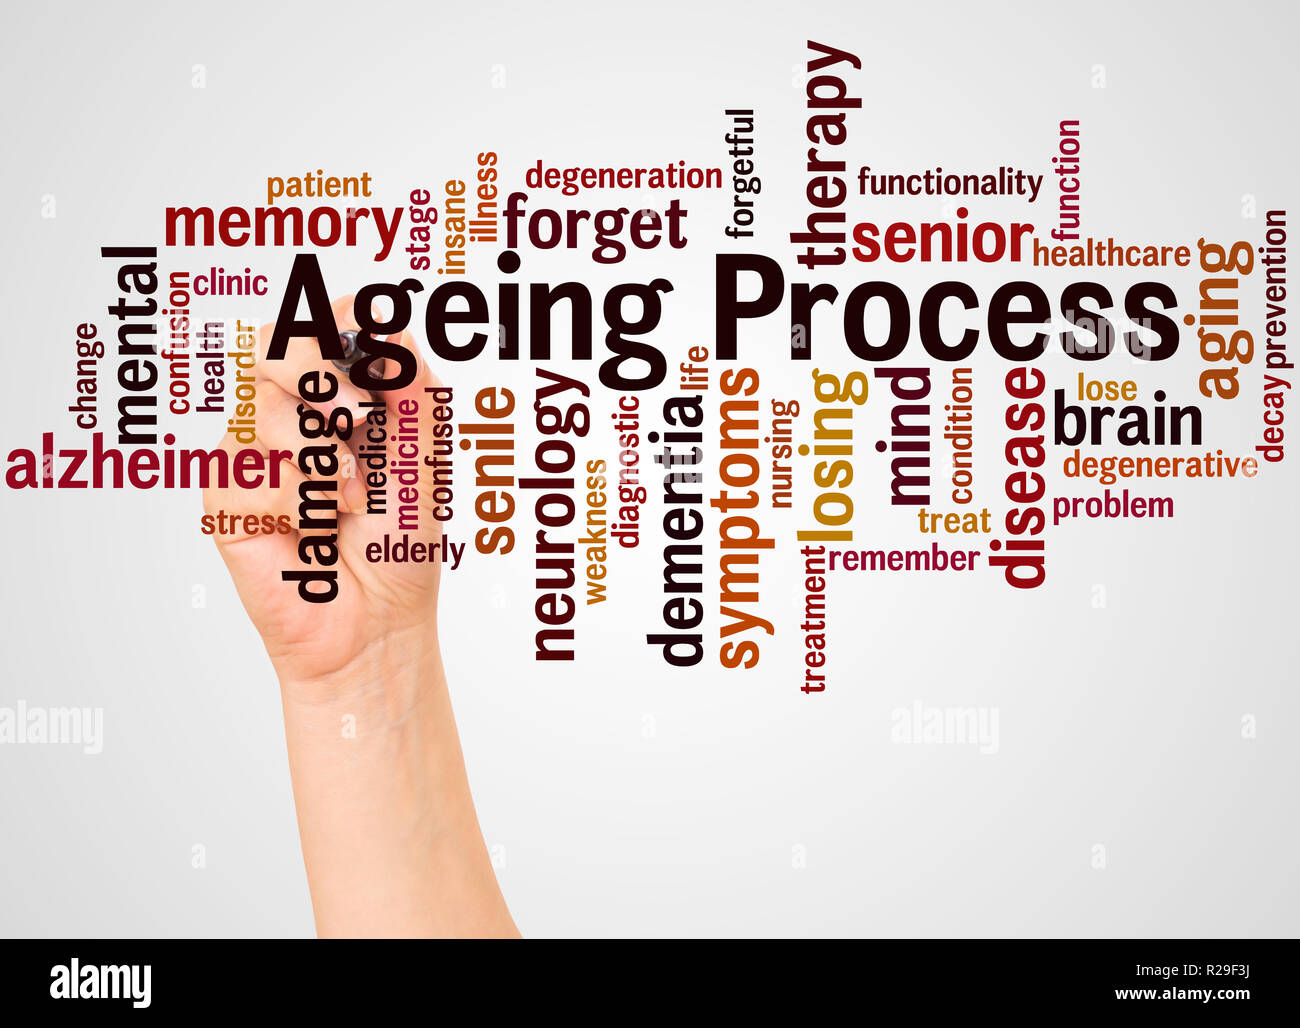 Ageing Process, word cloud and hand with marker concept on white background. - Stock Image